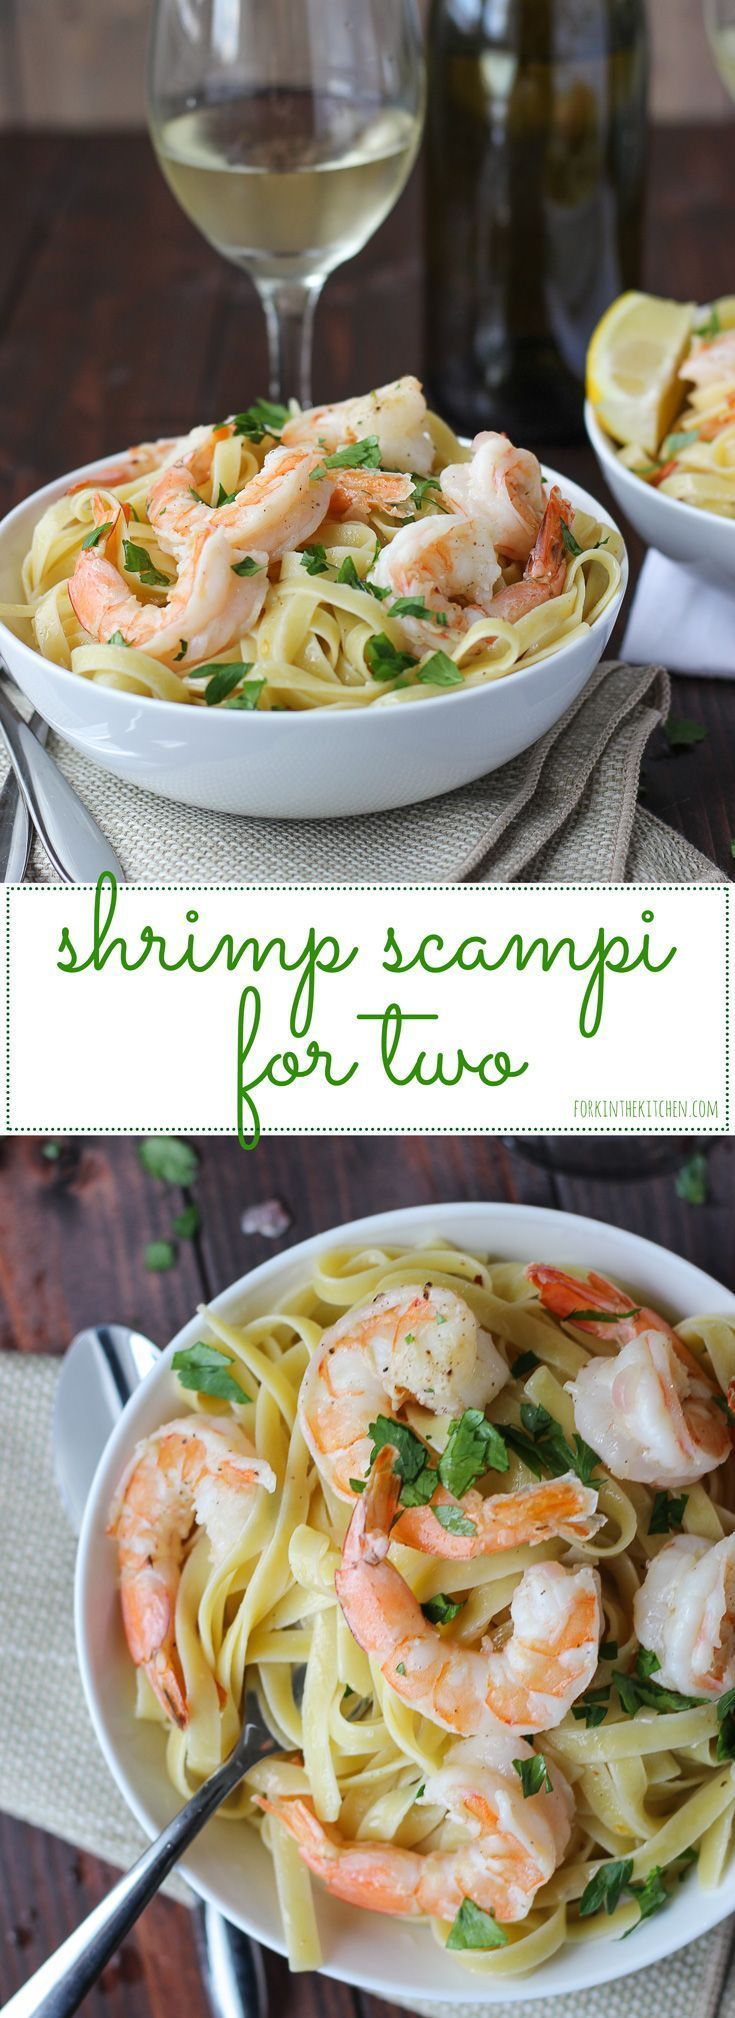 Shrimp Scampi for Two #shrimpscampi Shrimp Scampi for Two #shrimpscampi Shrimp Scampi for Two #shrimpscampi Shrimp Scampi for Two #shrimpscampi